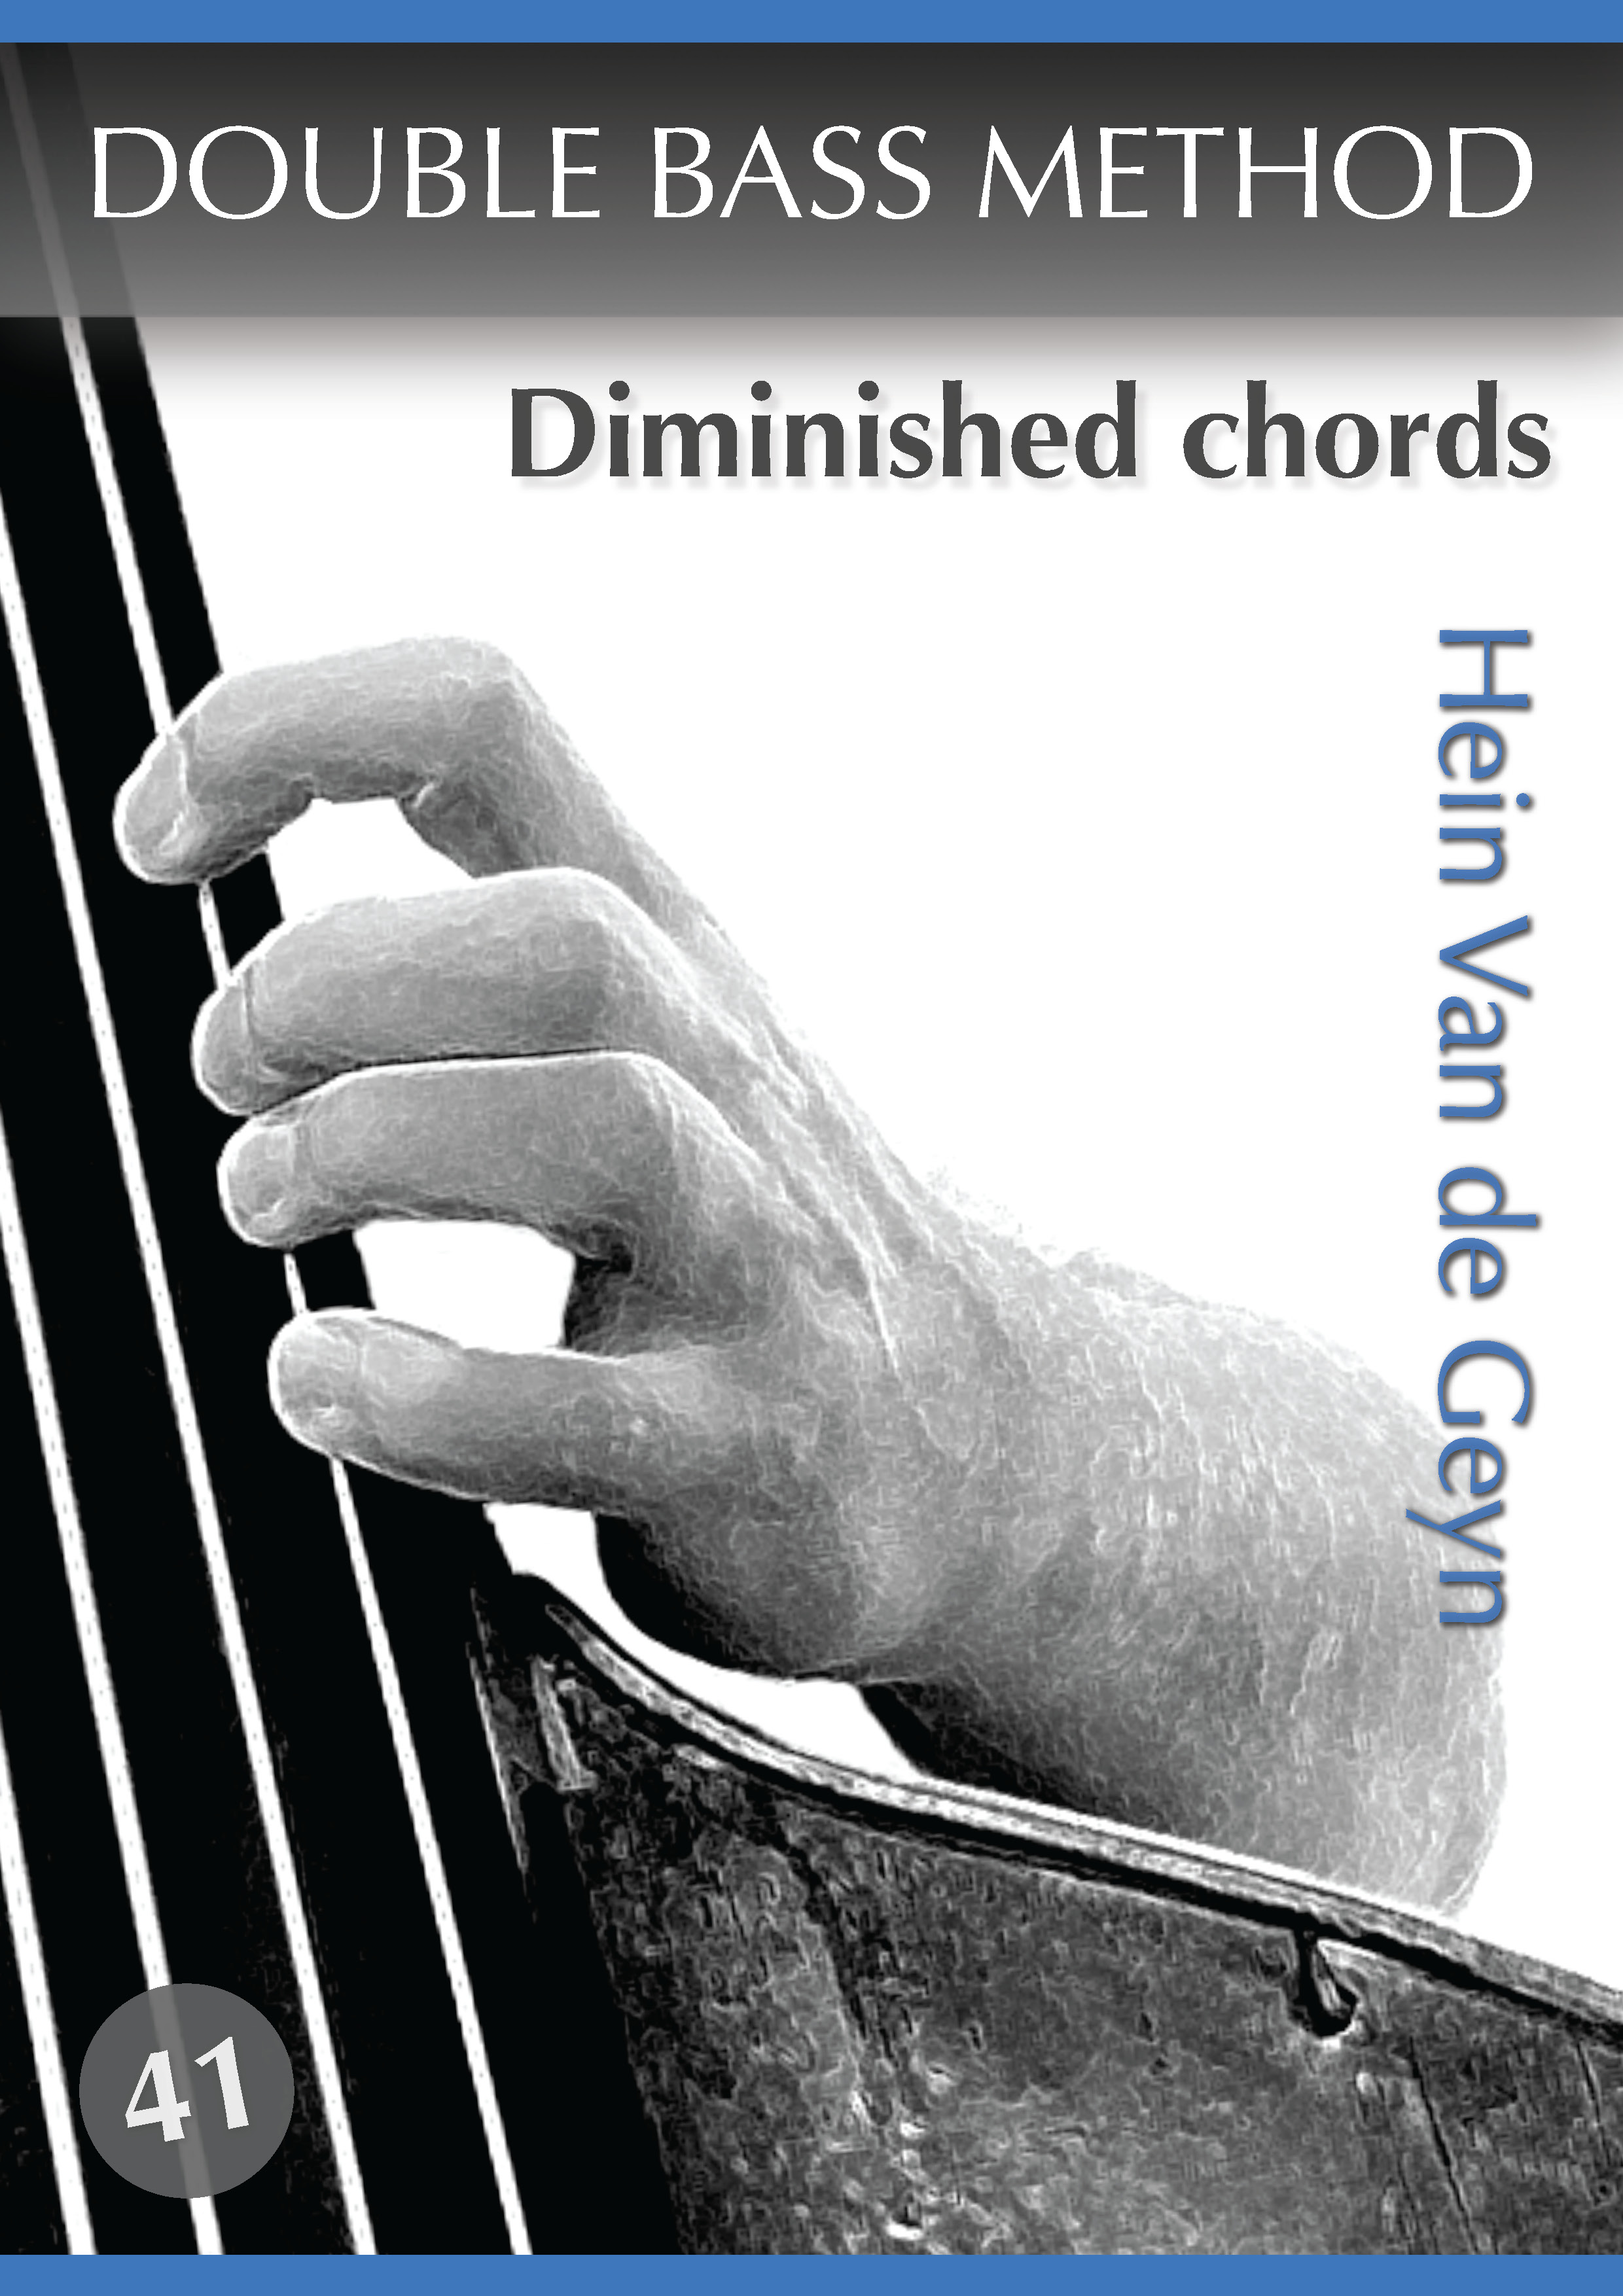 Diminished chords - Hein Van de Geyn - Double Bass Method